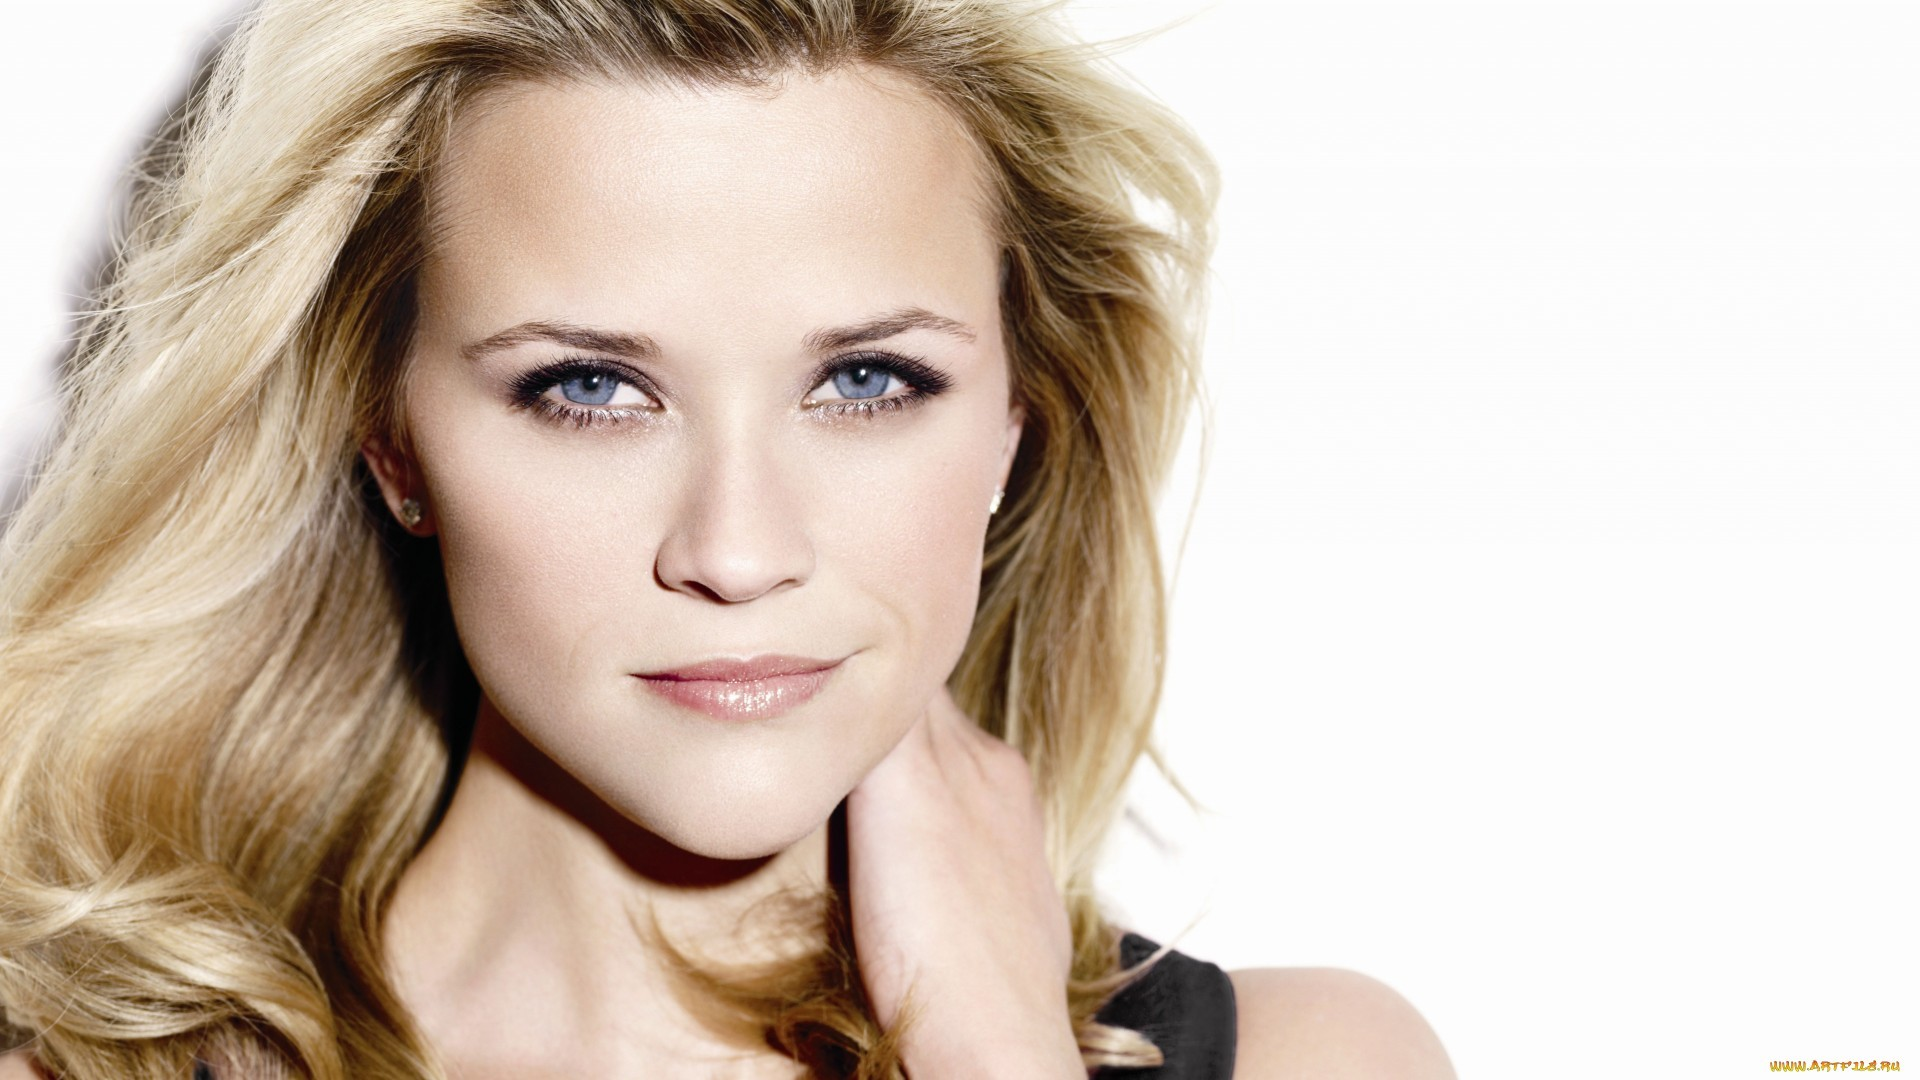 1920x1080 - Reese Witherspoon Wallpapers 2